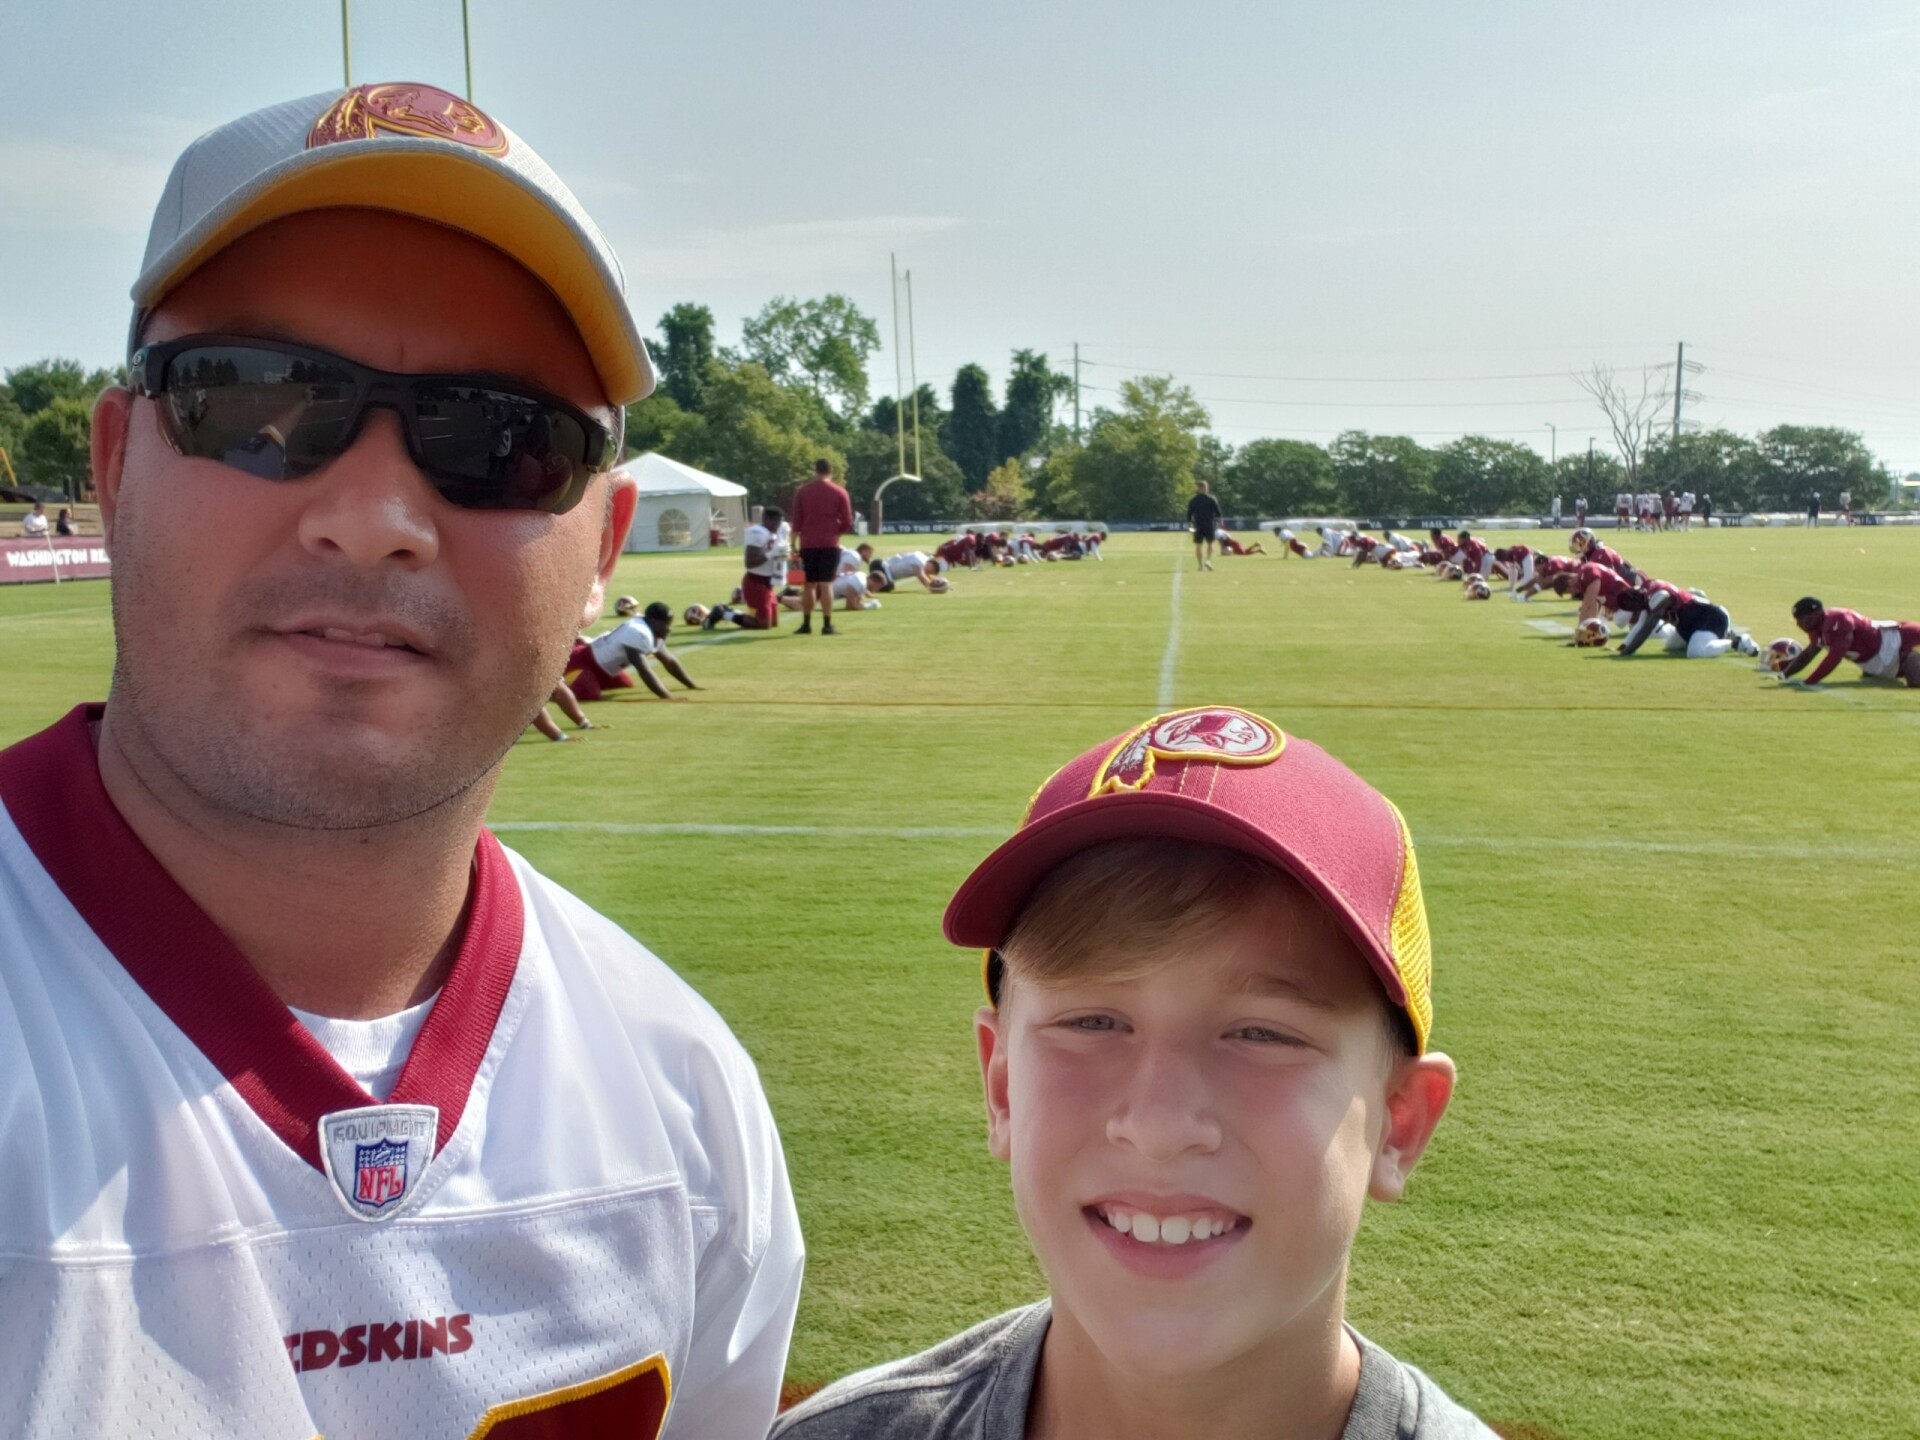 Photos: Gallery: Share your Redskins fan photos